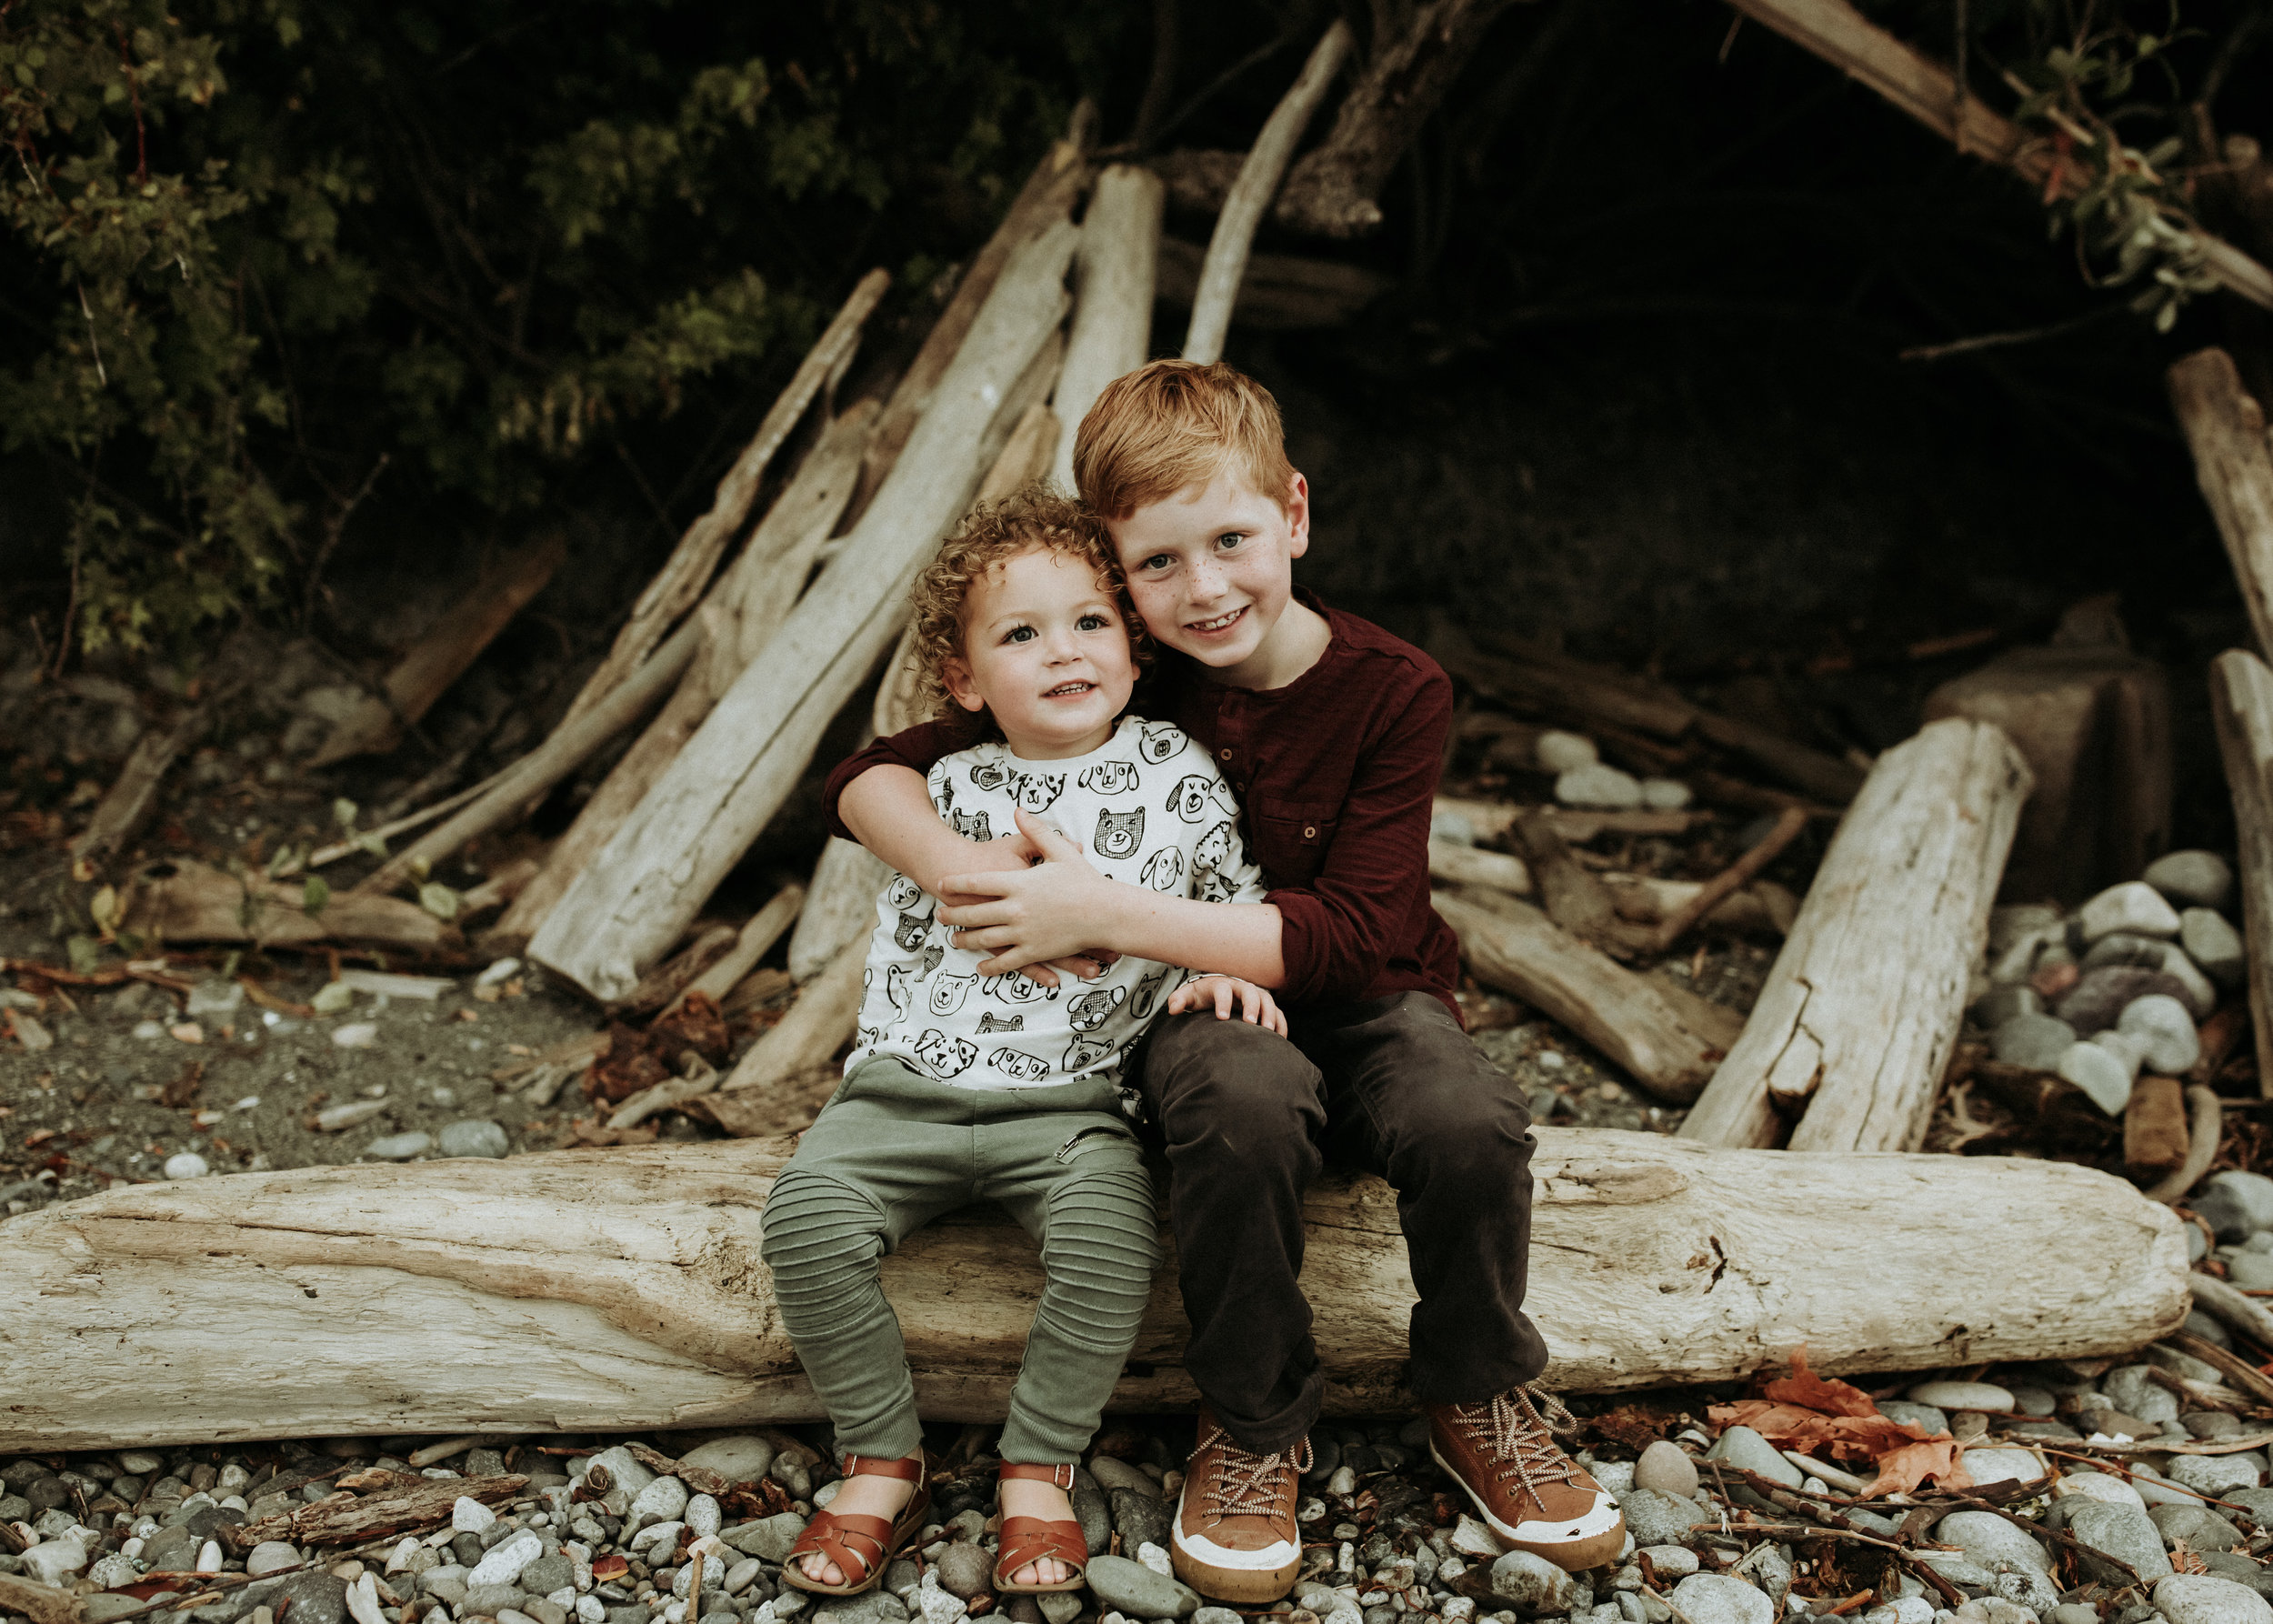 Family-Photographer-Bellingham-WA-Brianne-Bell-Photography-(Vos)-19.jpg